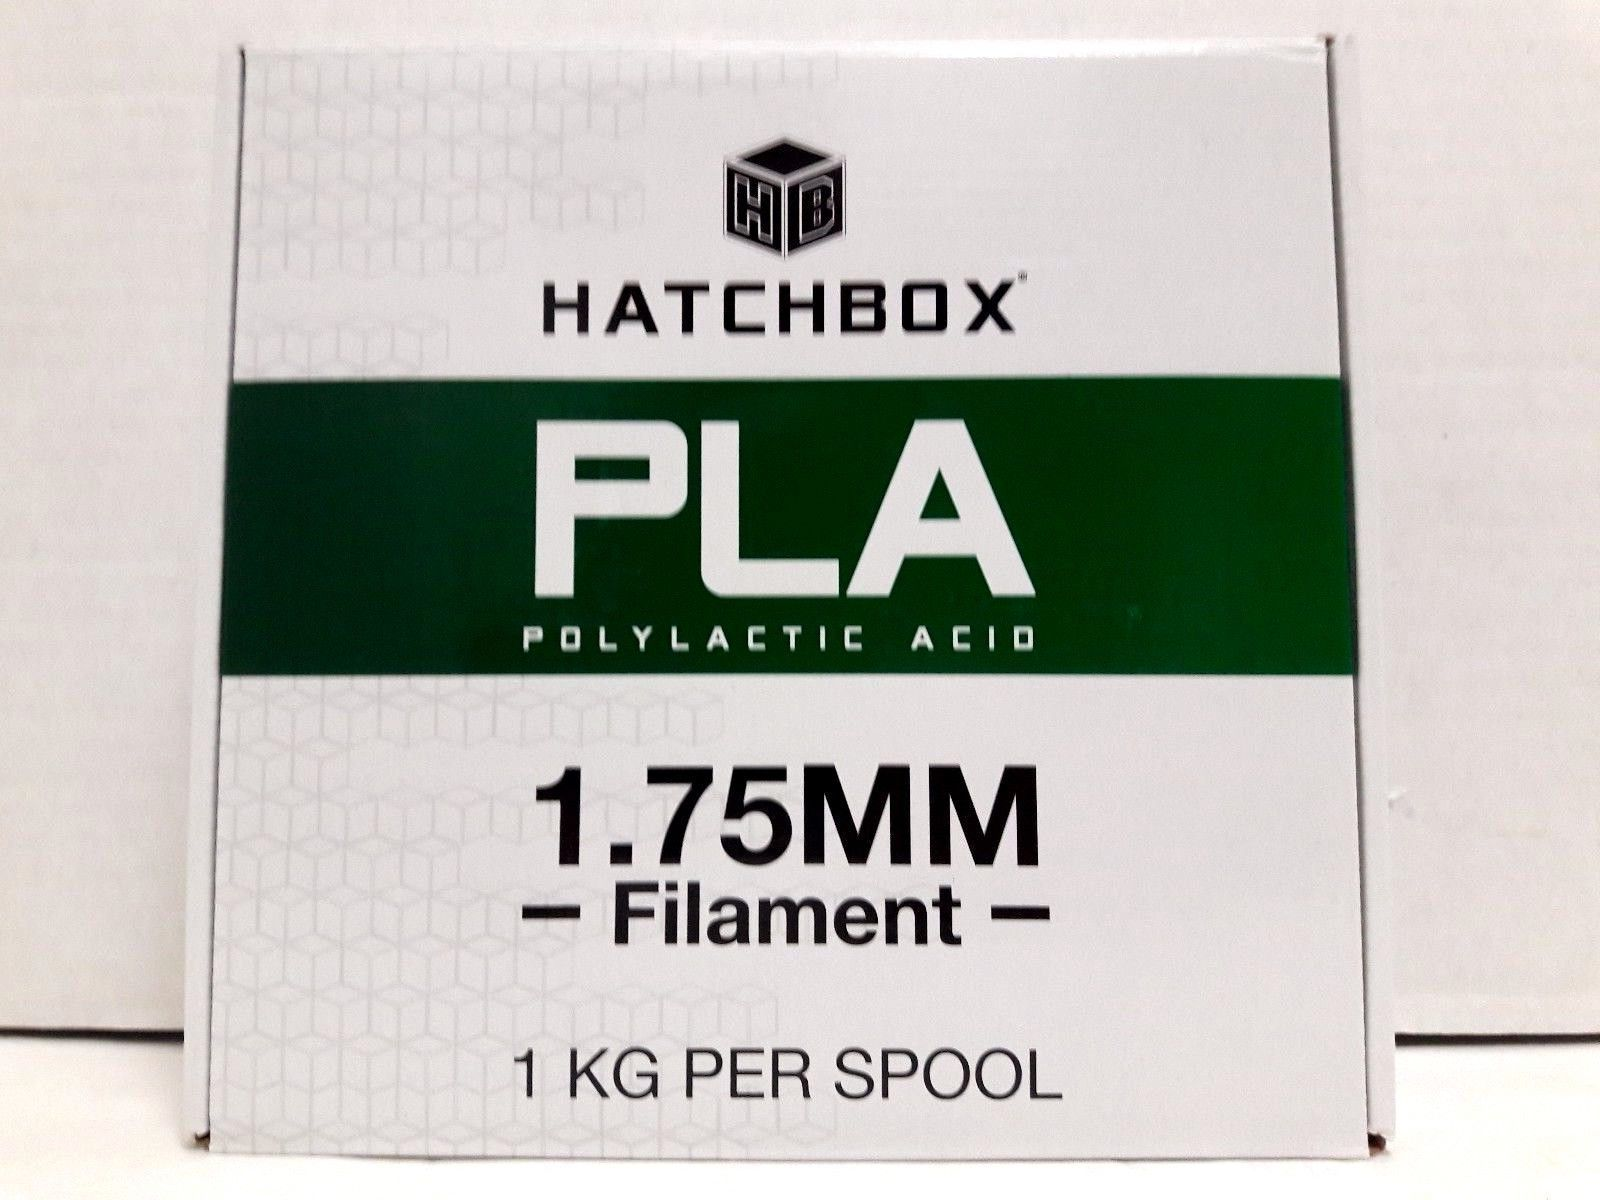 Primary image for Hatchbox PLA 3D Printer Filament True Yellow Polylactic Acid 1.75MM Filament